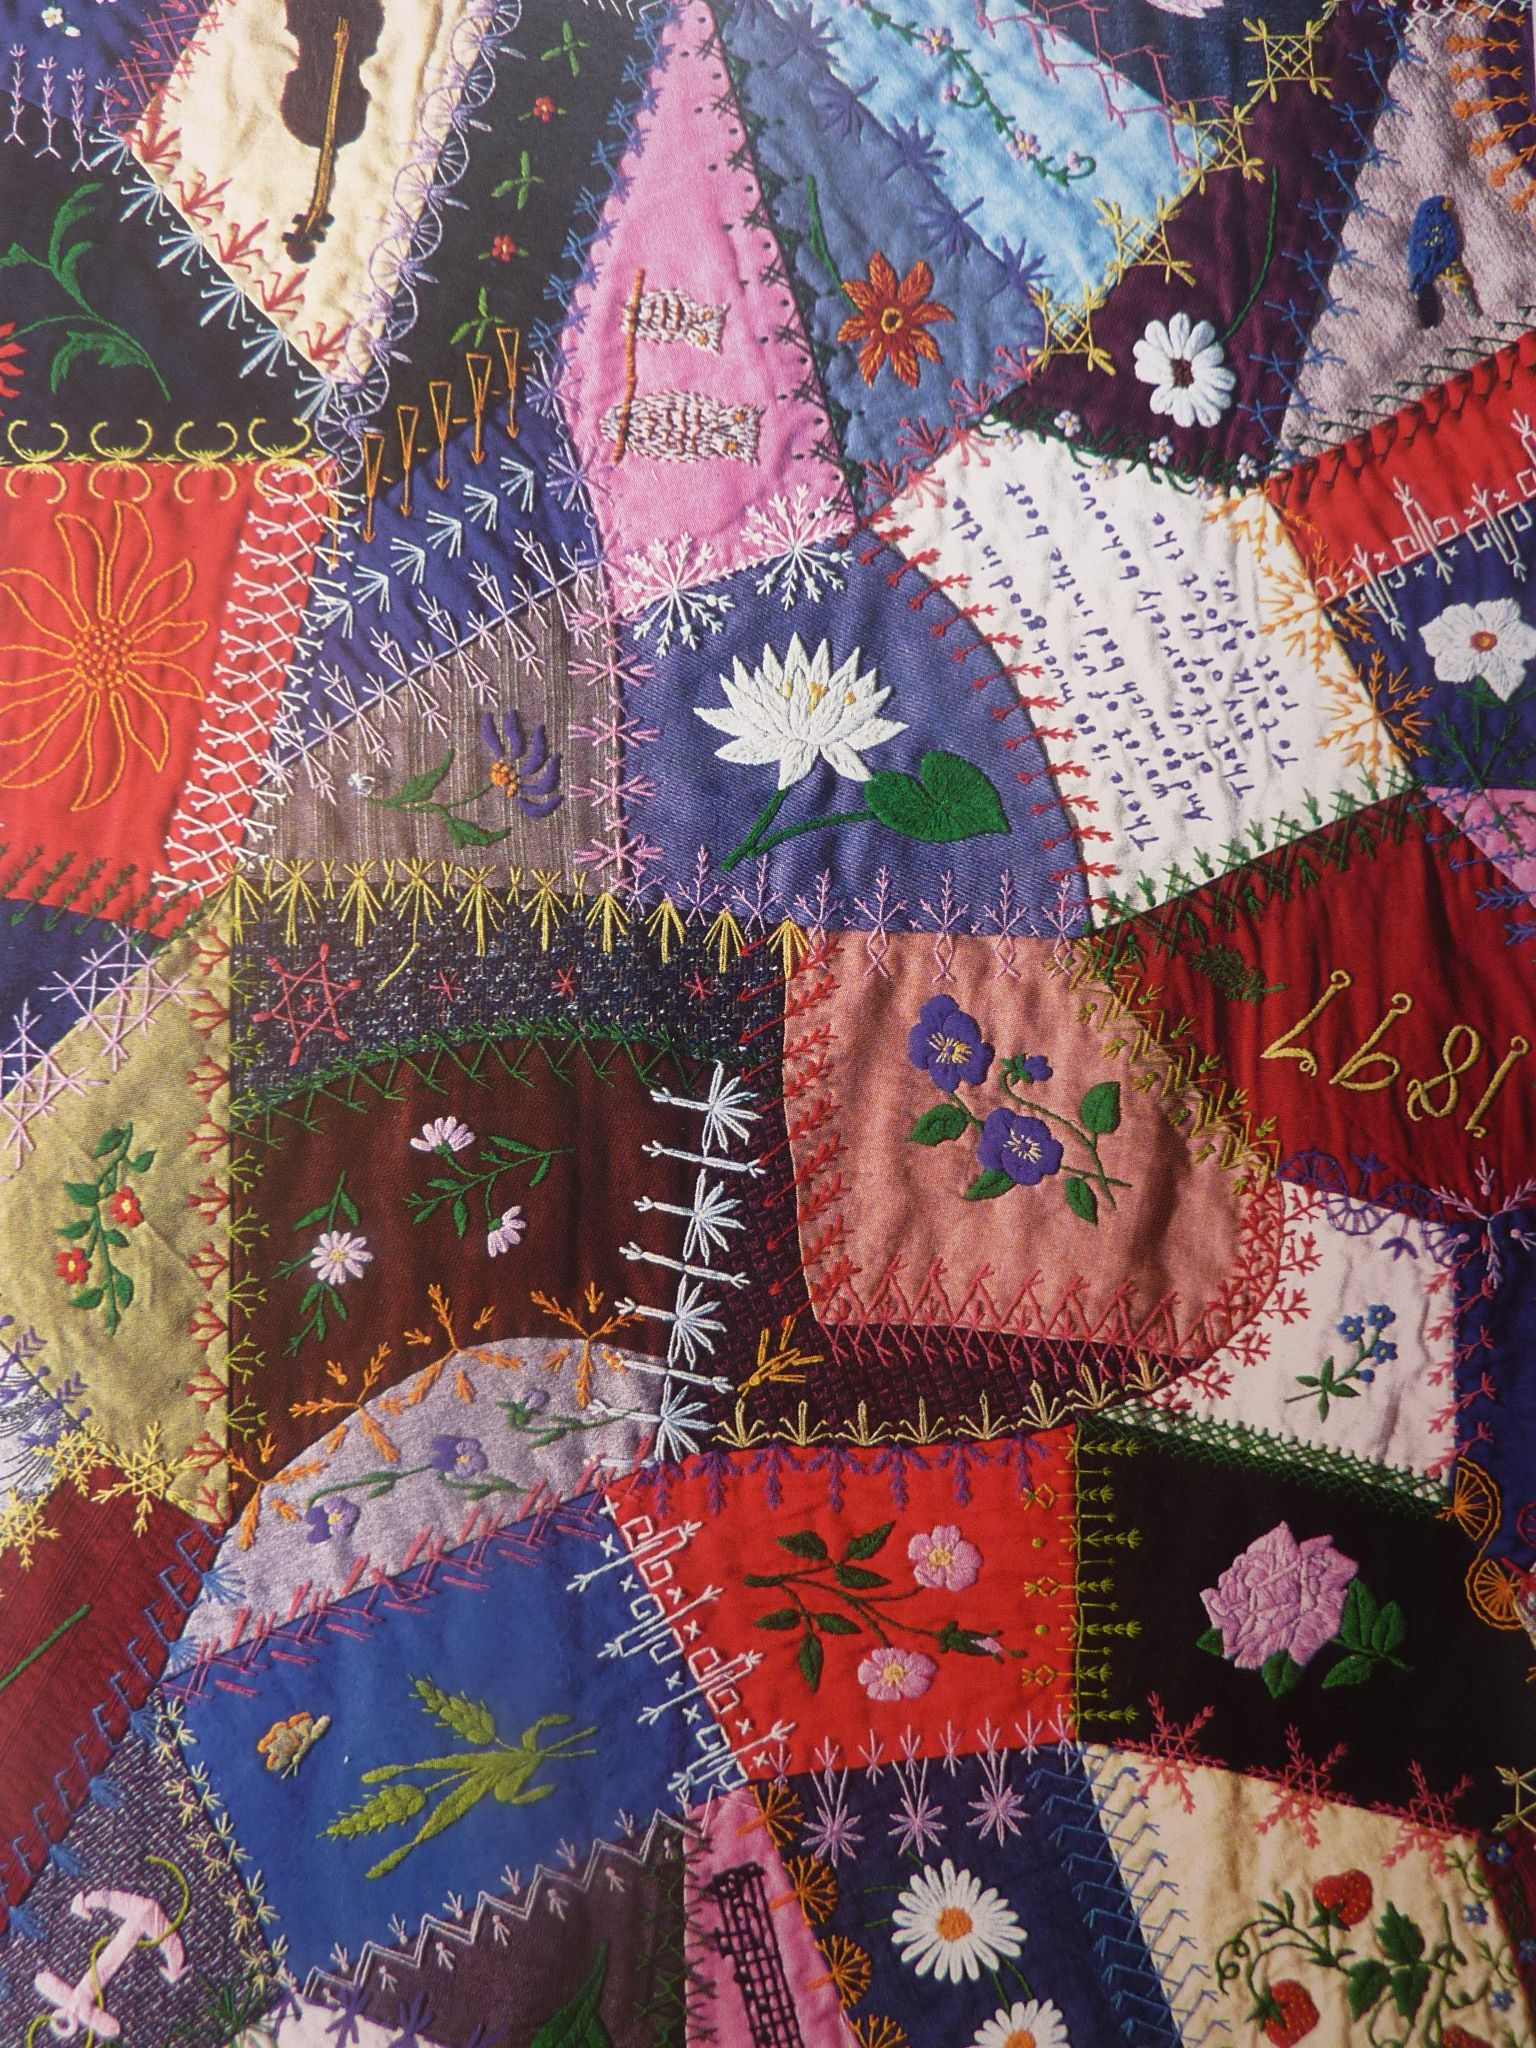 Edna Force Davis (American) Wool crazy patchwork detail 1897-1929 Smithsonian Institution